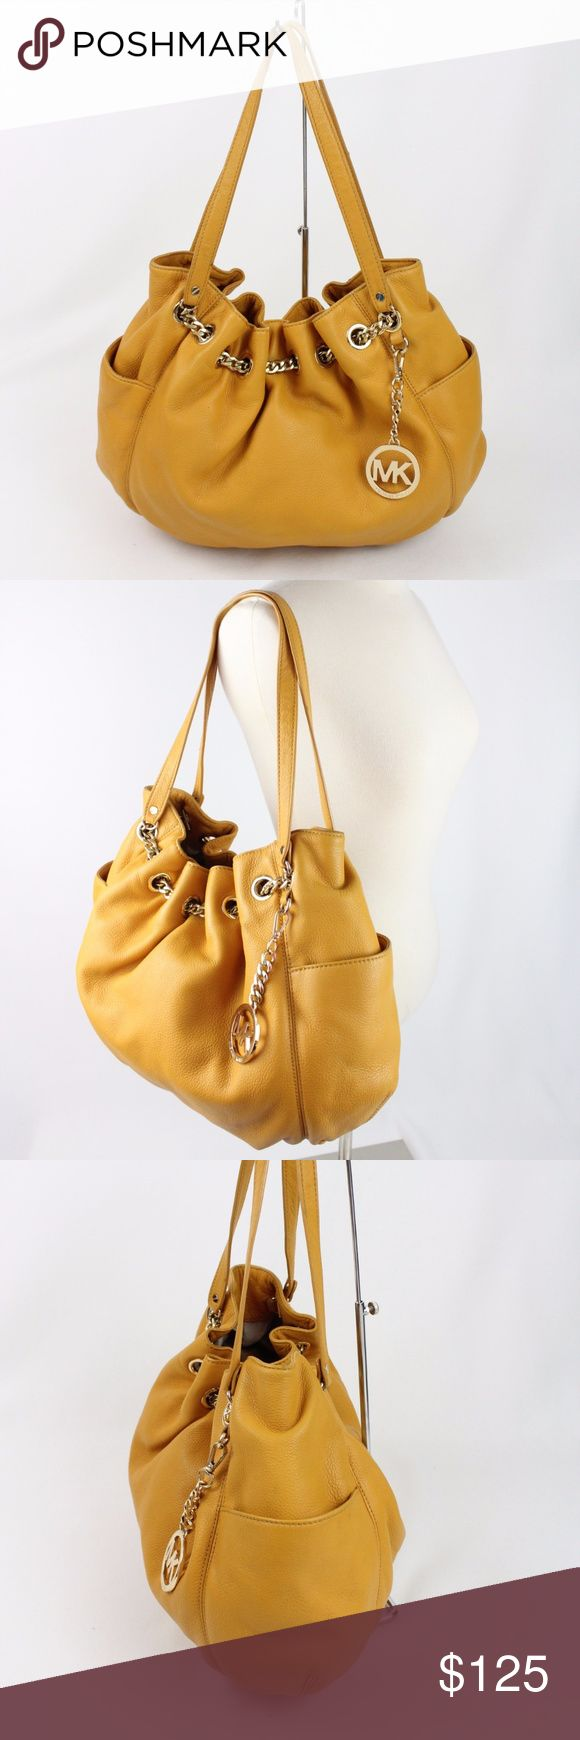 Michael Kors Jet Set Chain Ring Tote Bag Marigold Darling Michael Kors jet set ring tote.  Gently used bag  in great condition.  Very clean interior and exterior! Michael Kors Bags Shoulder Bags